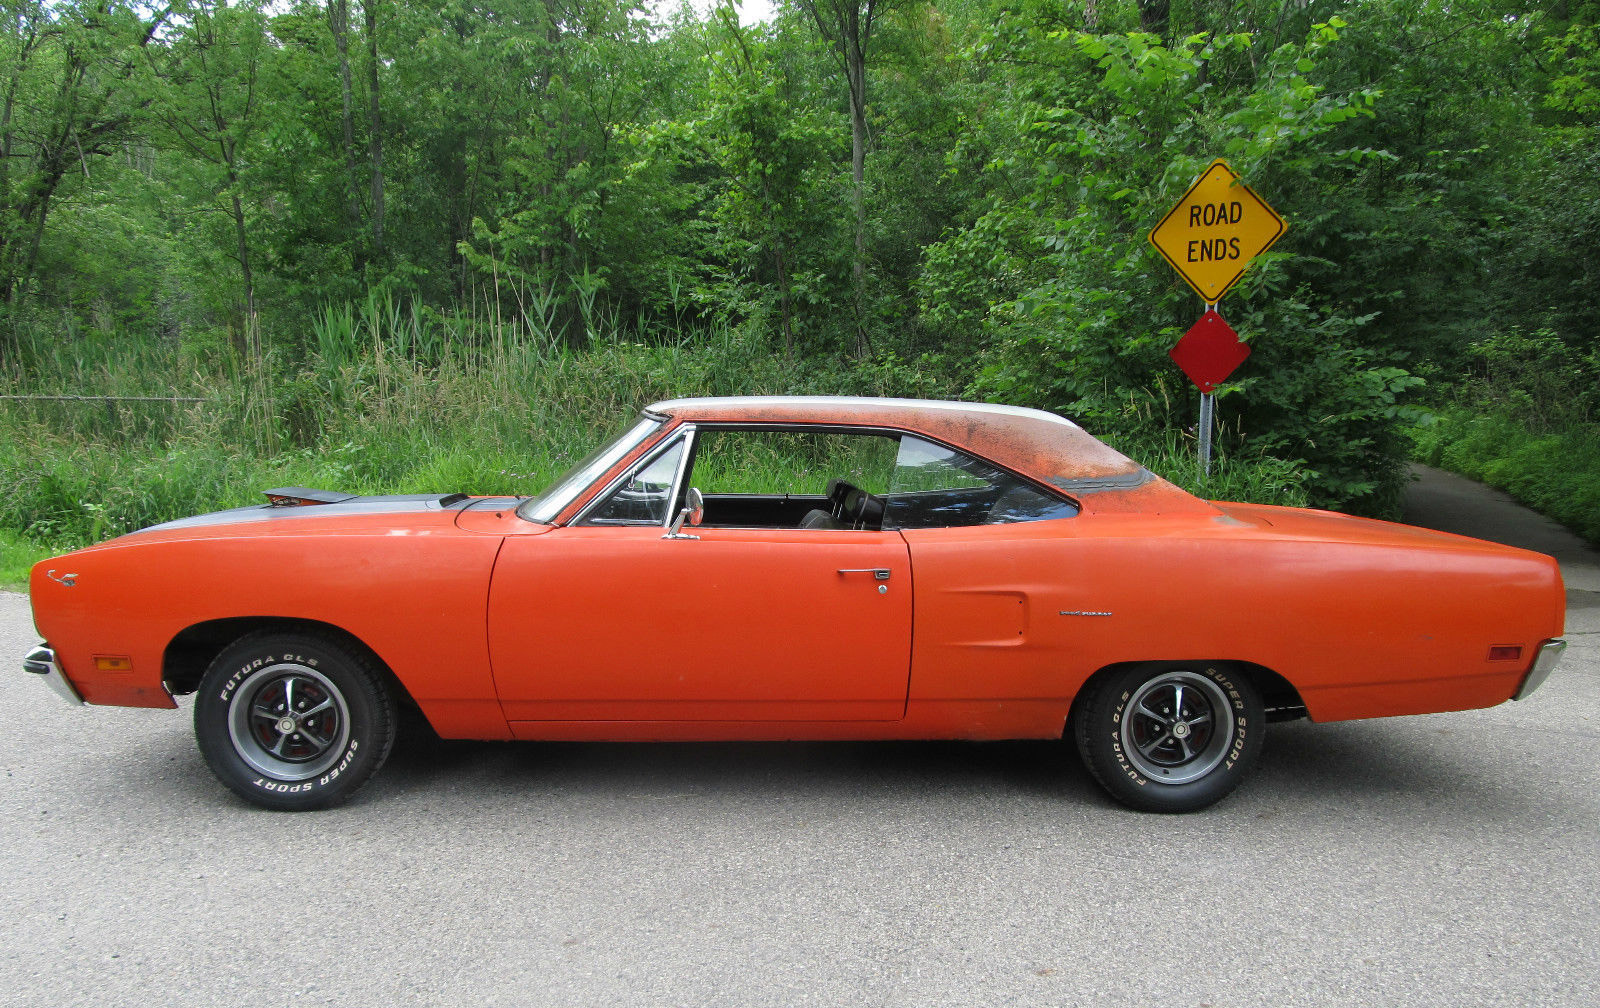 1970 Roadrunner Project For Sale Autos Post